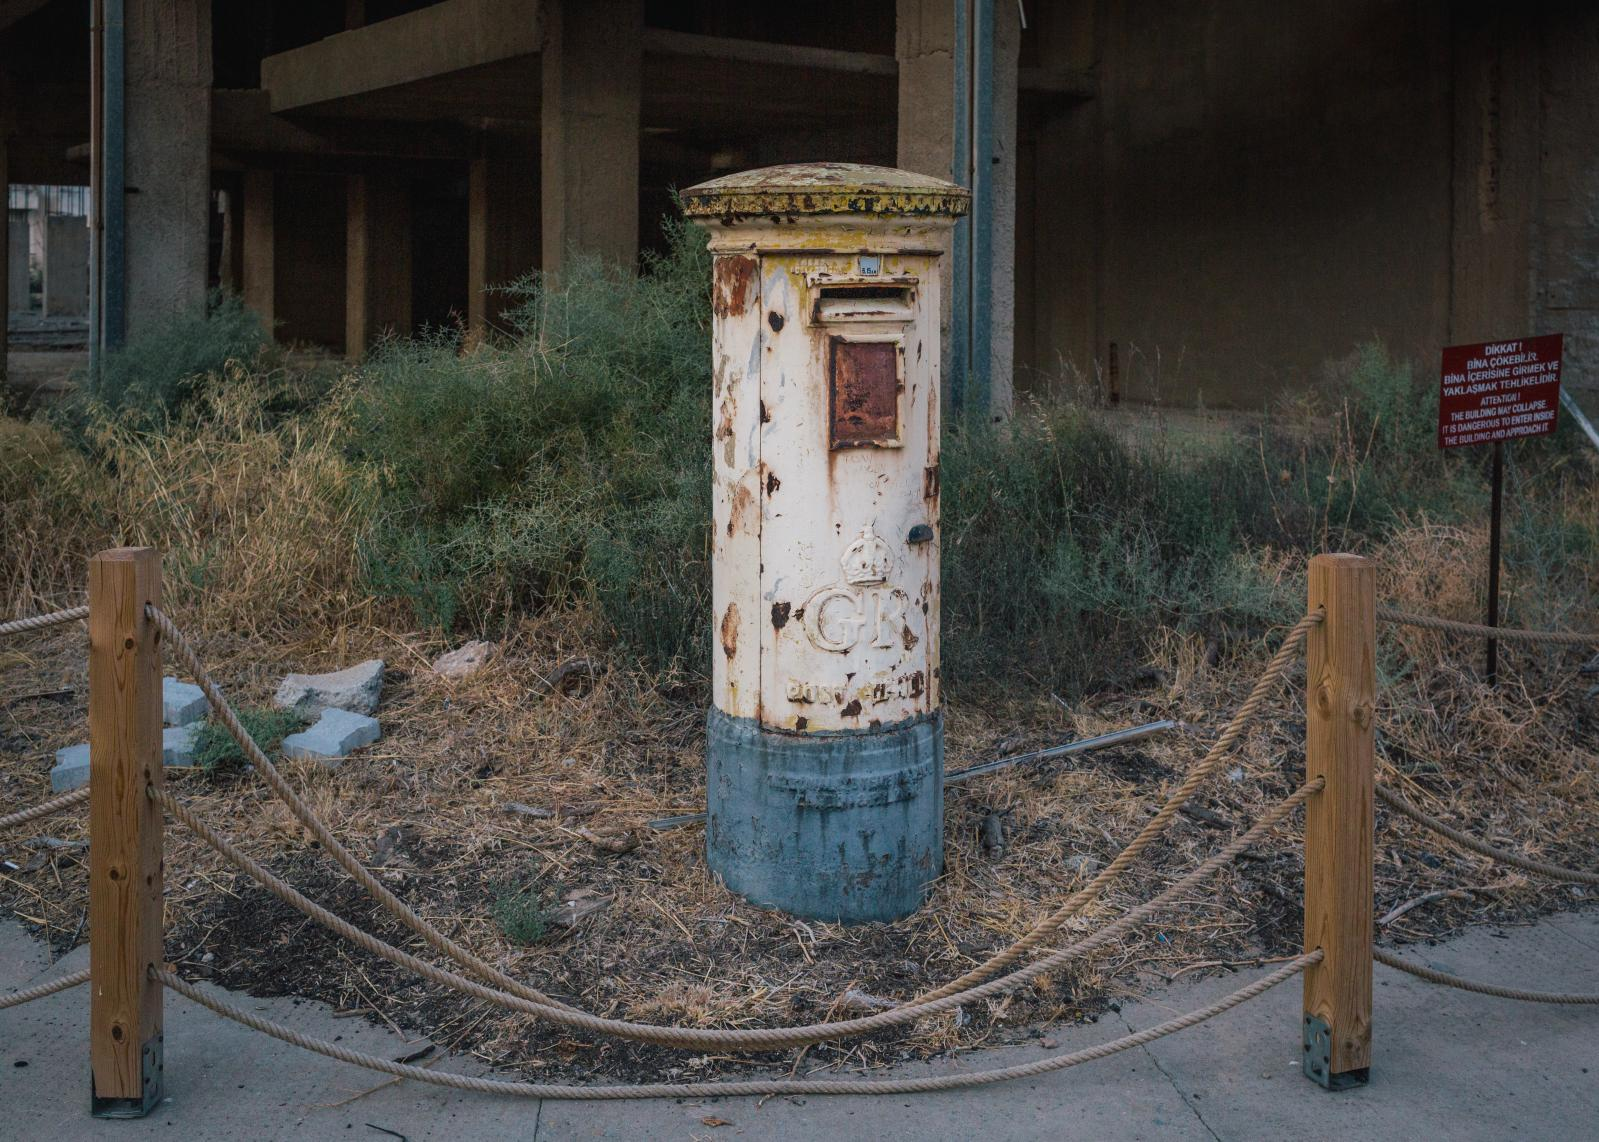 A former mail box in the ghost town of Famagusta.